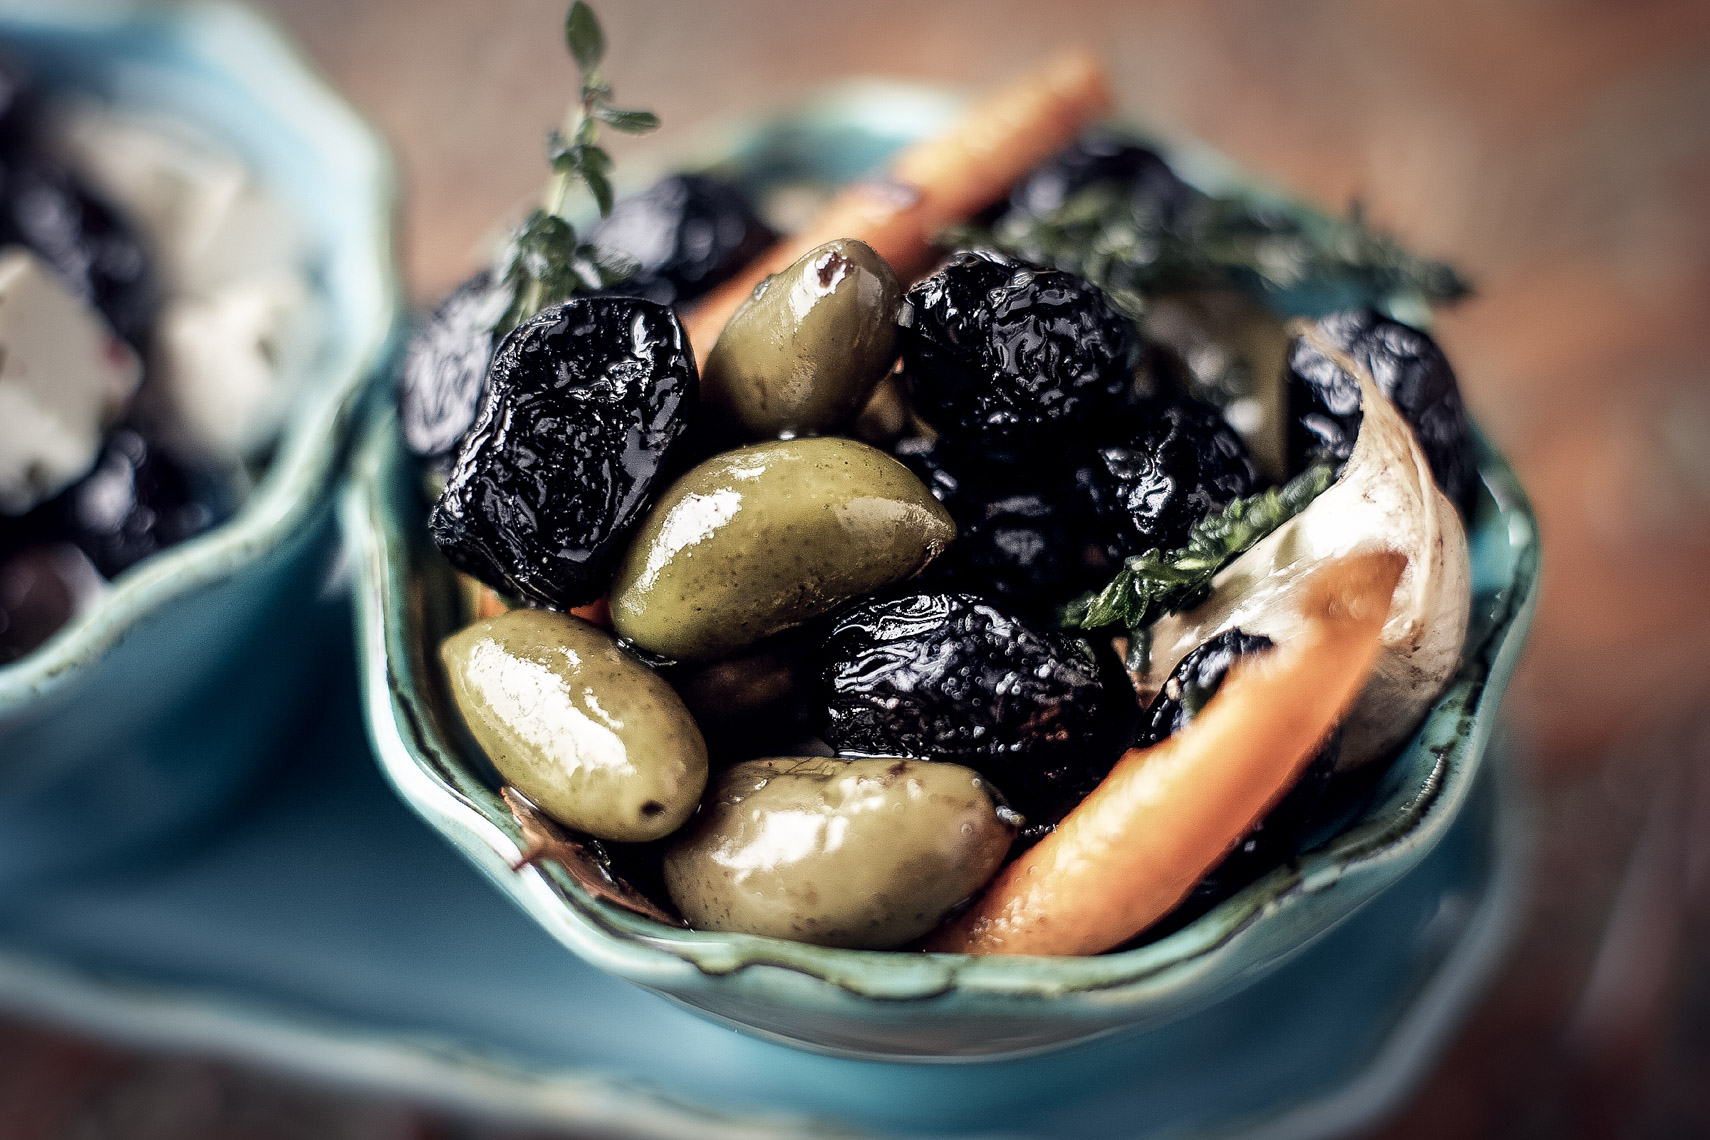 black and green artisanal olives in blue bowl